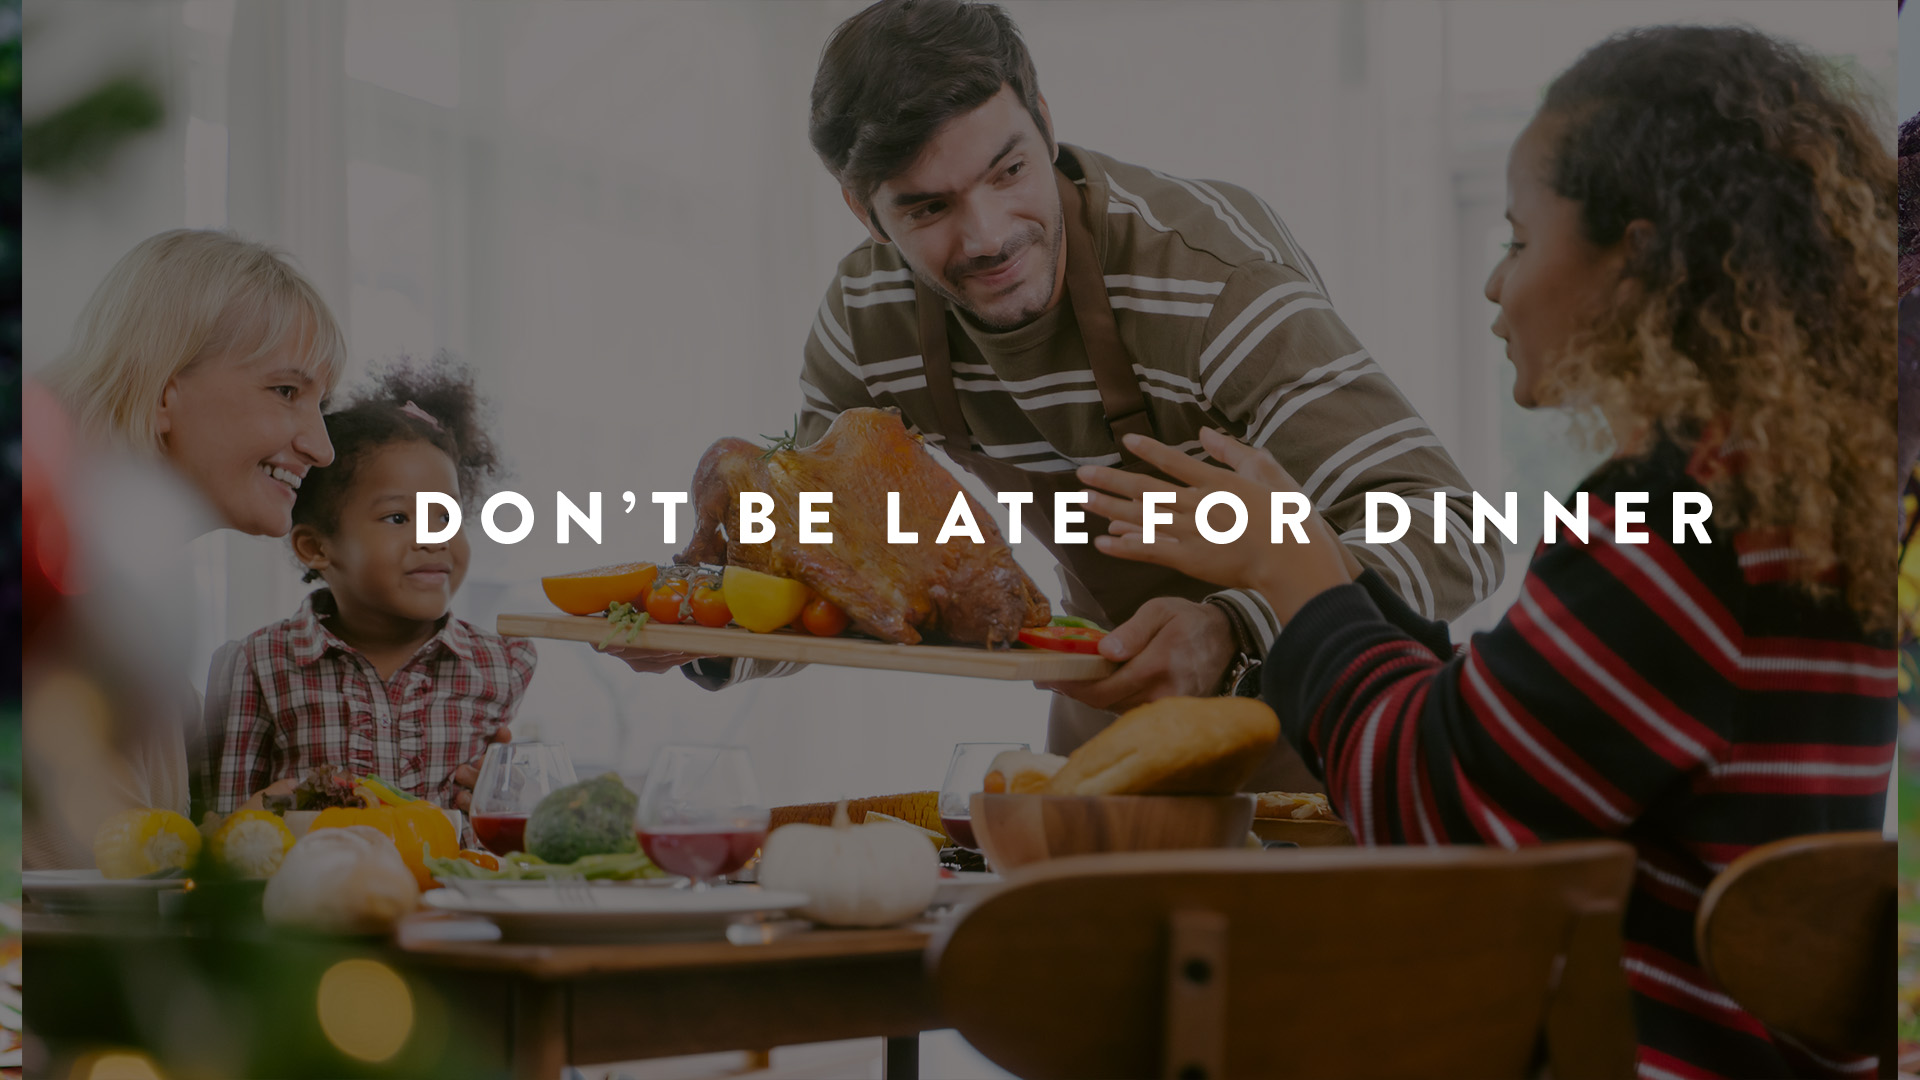 Don't be late for dinner